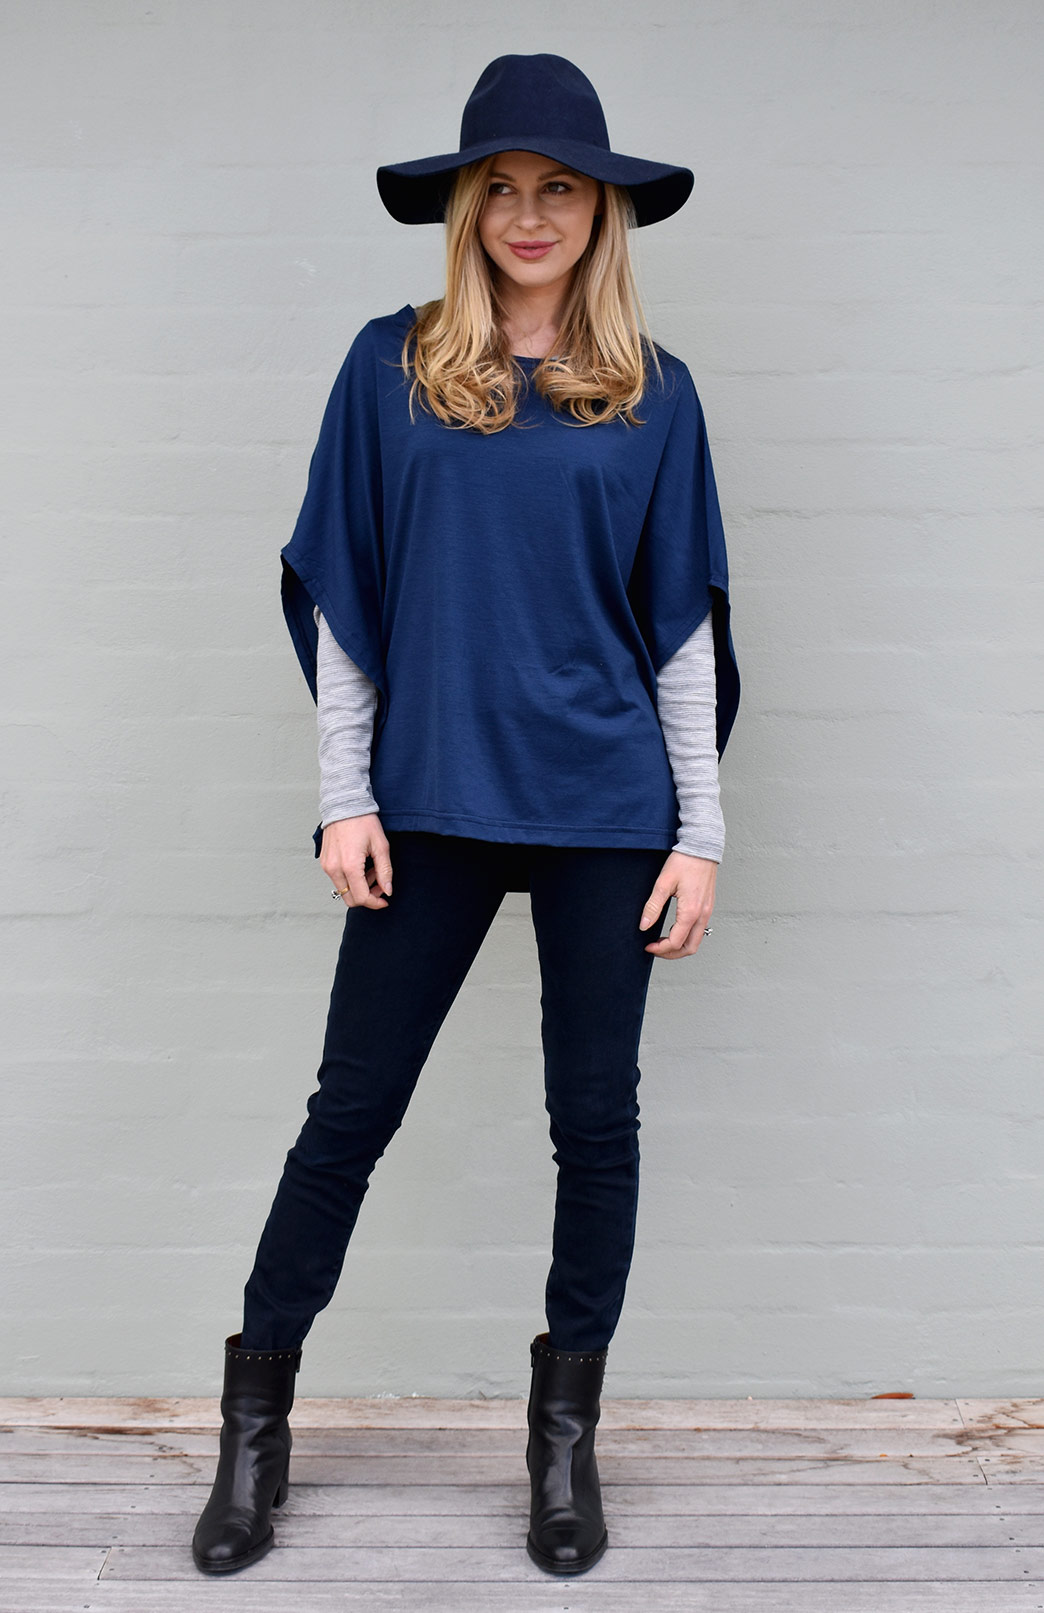 02d2ab8e8a832d Spacey Top - Women's Indigo Blue Merino Wool Poncho Style Loose Fit Fashion  Top - Smitten